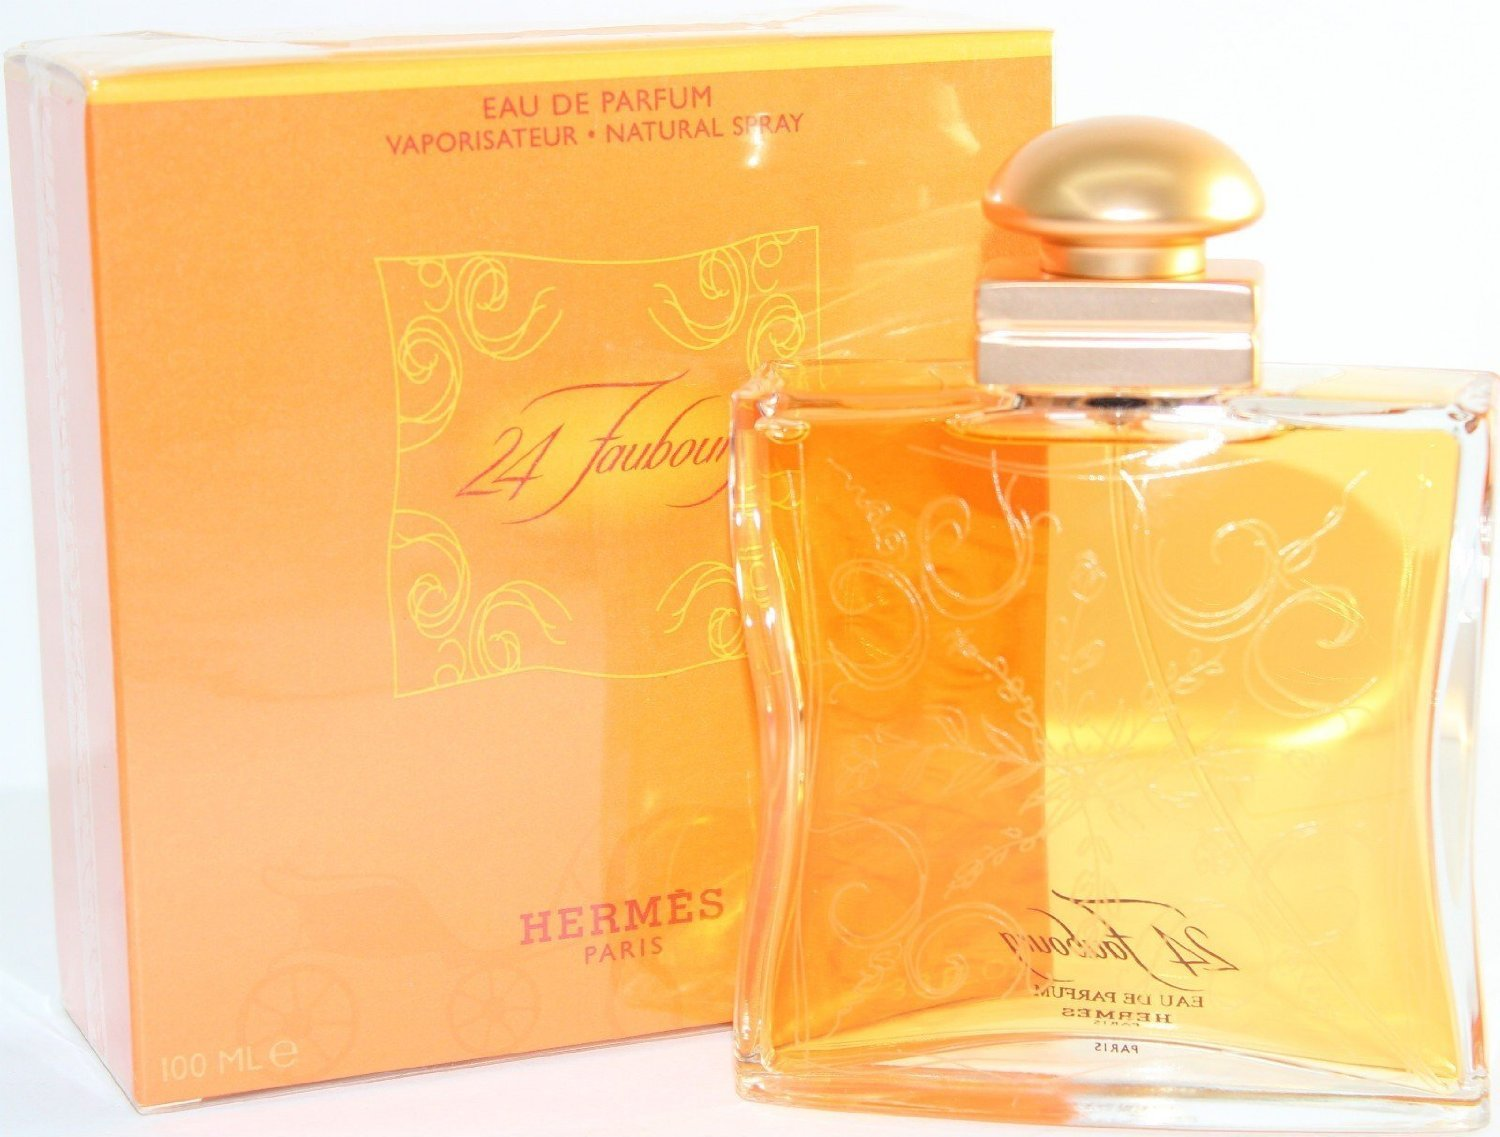 24 Faubourg 3.4 Edp Sp by Faubourg